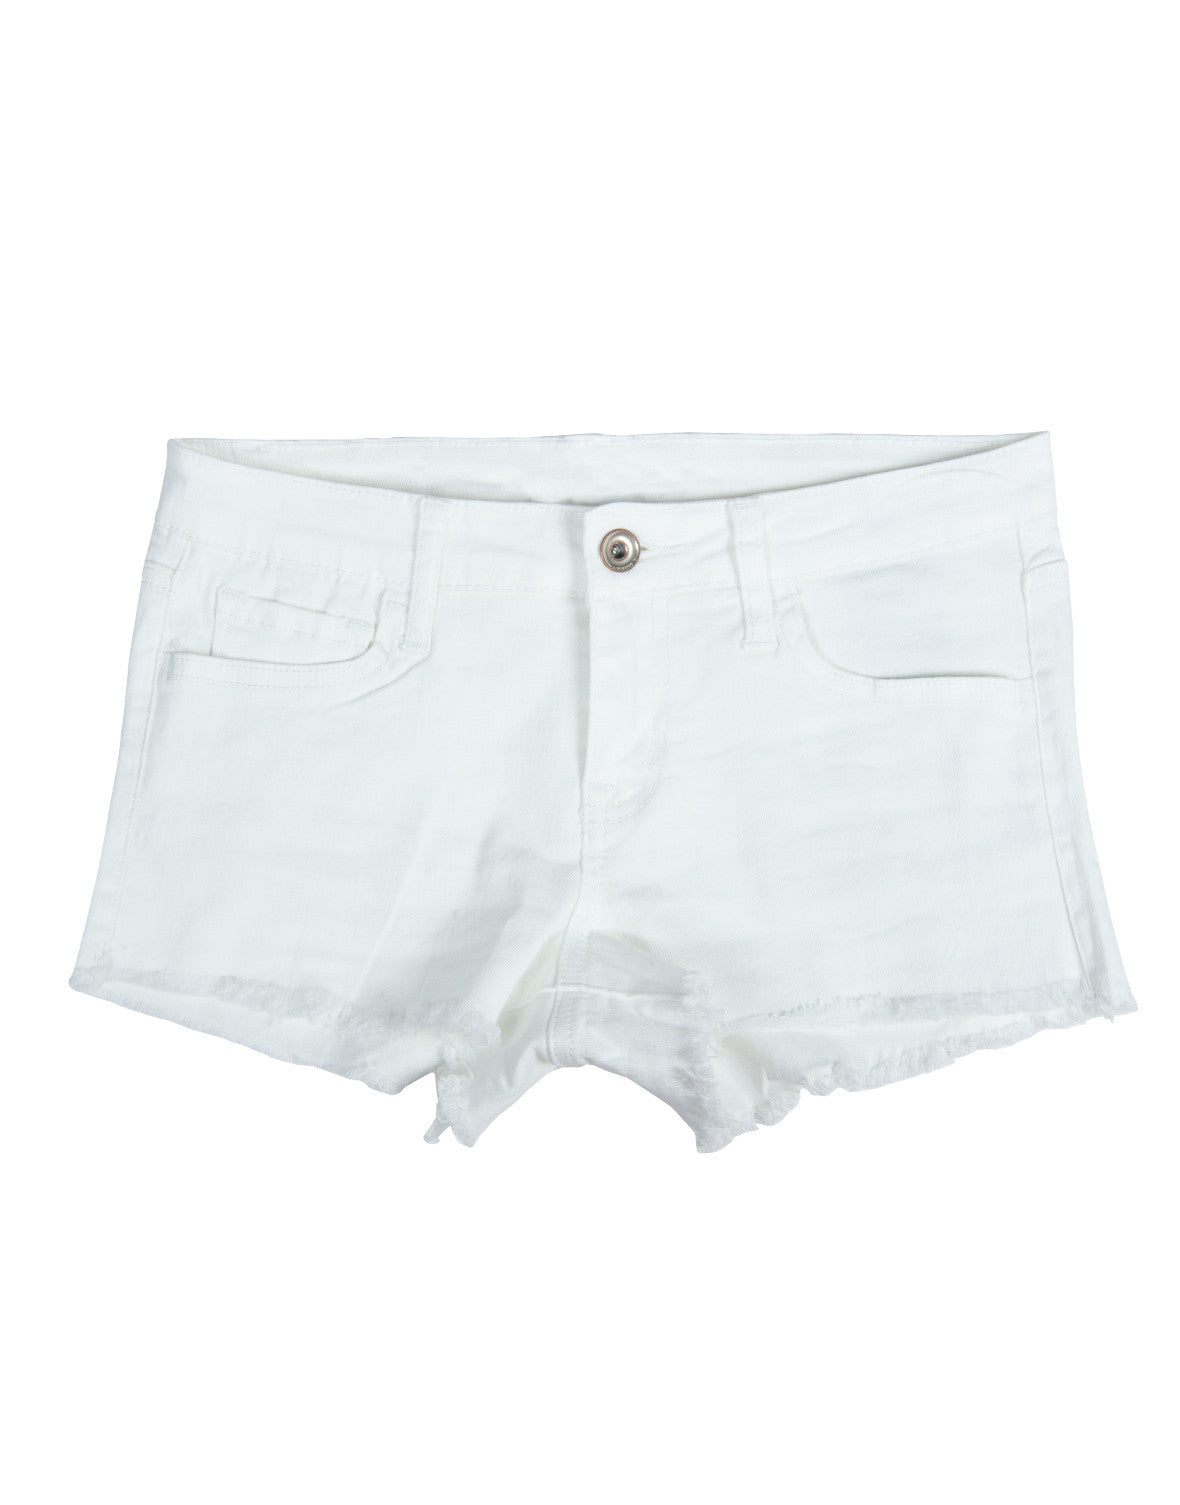 Simple Cut Off Shorts - 2020AVE